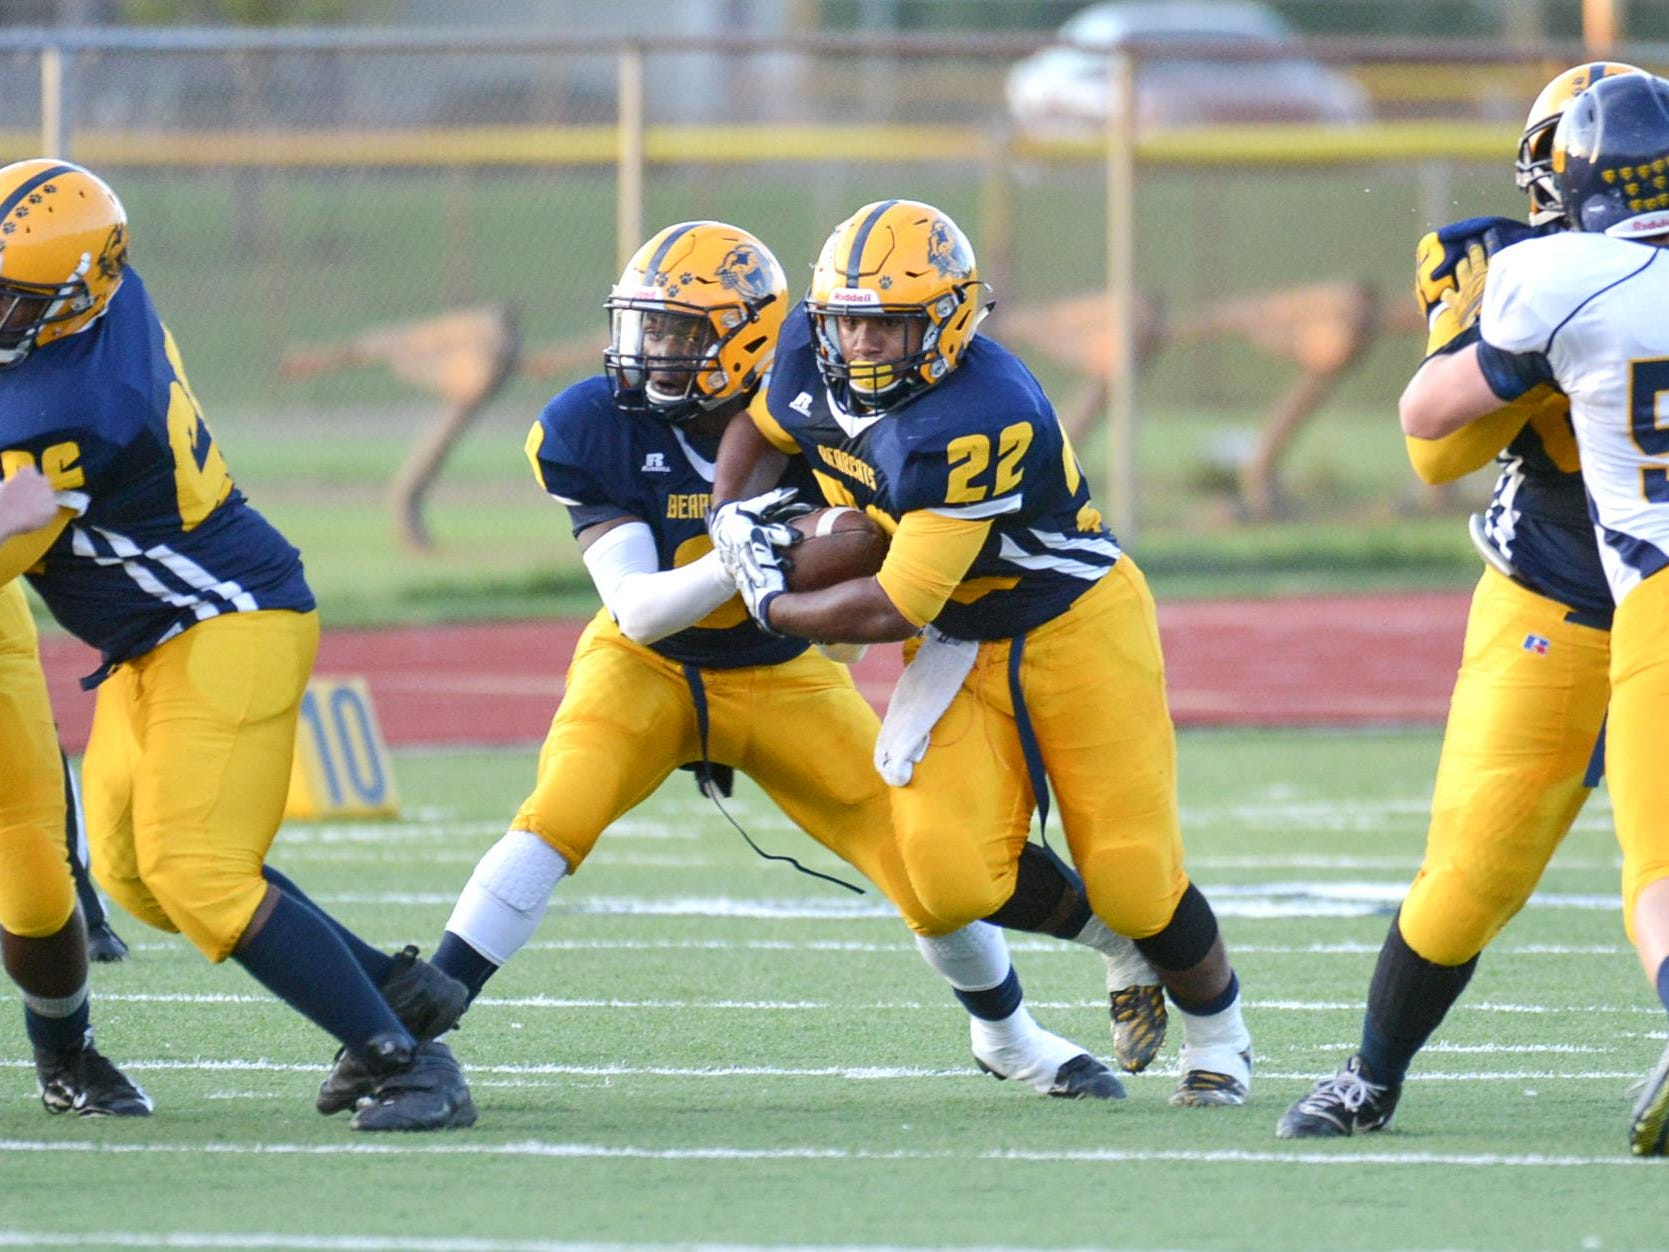 Battle Creek Central RB Carlos Parks secures the handoff from QB Dennis Watson and he rushes for positive yards Friday night.